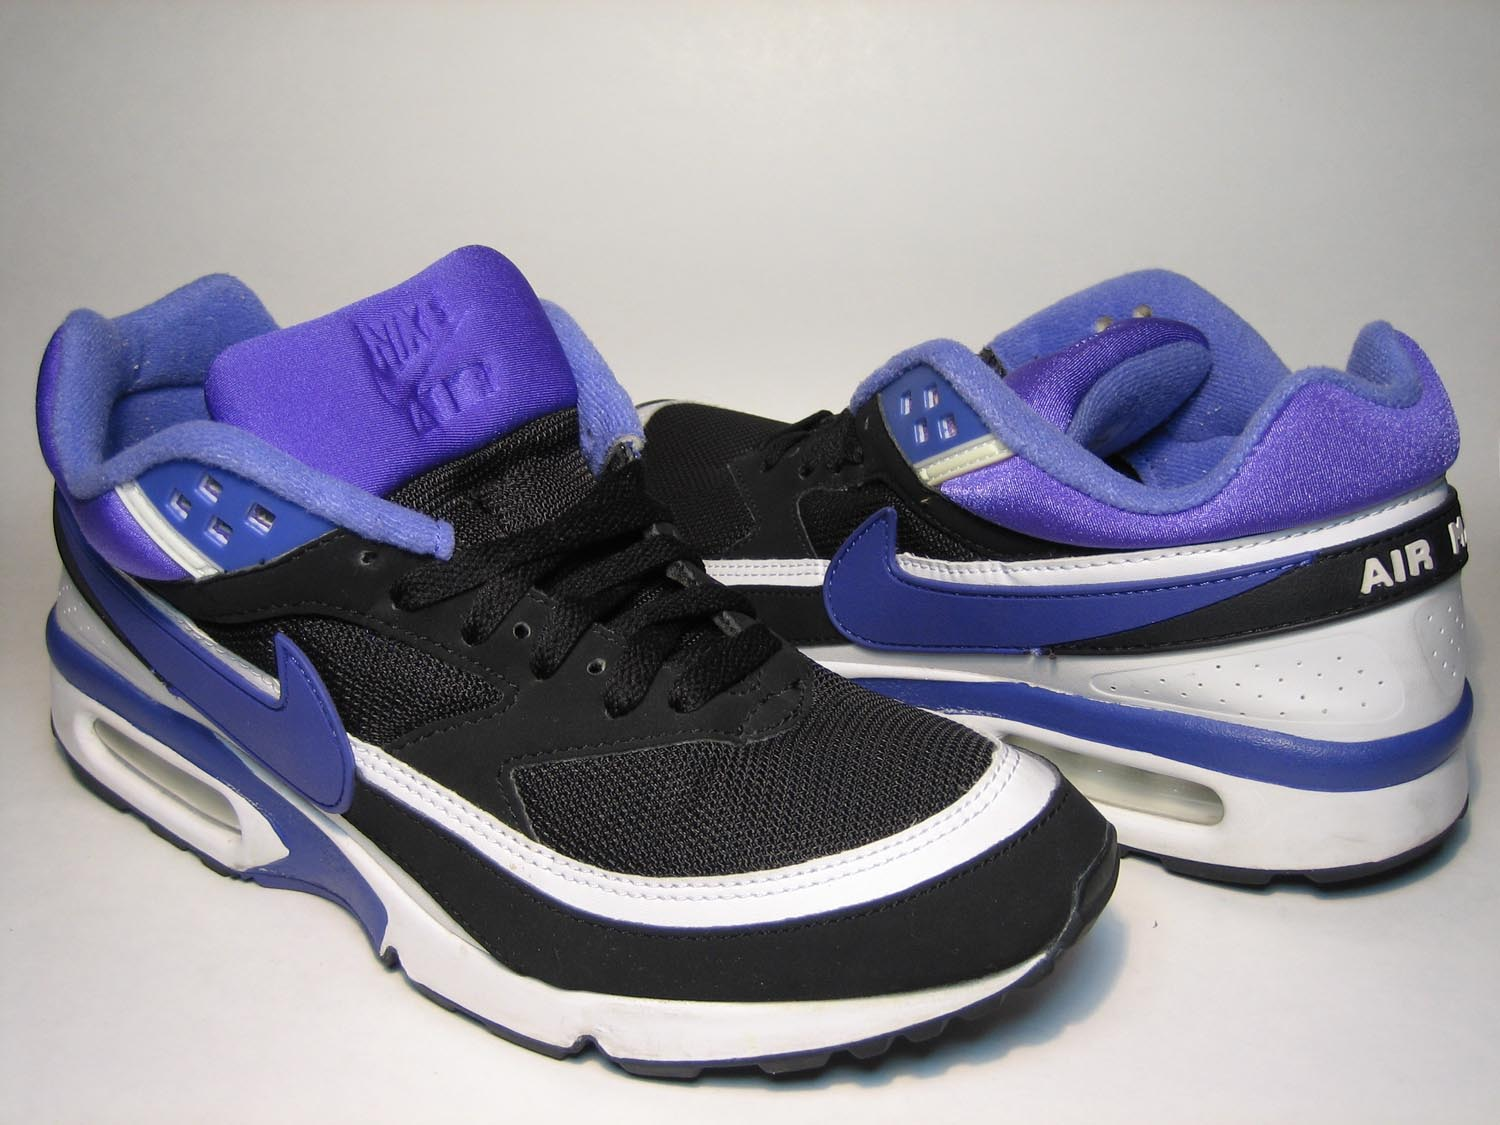 Air Max Classic File First Air Classic Jpg Wikipedia